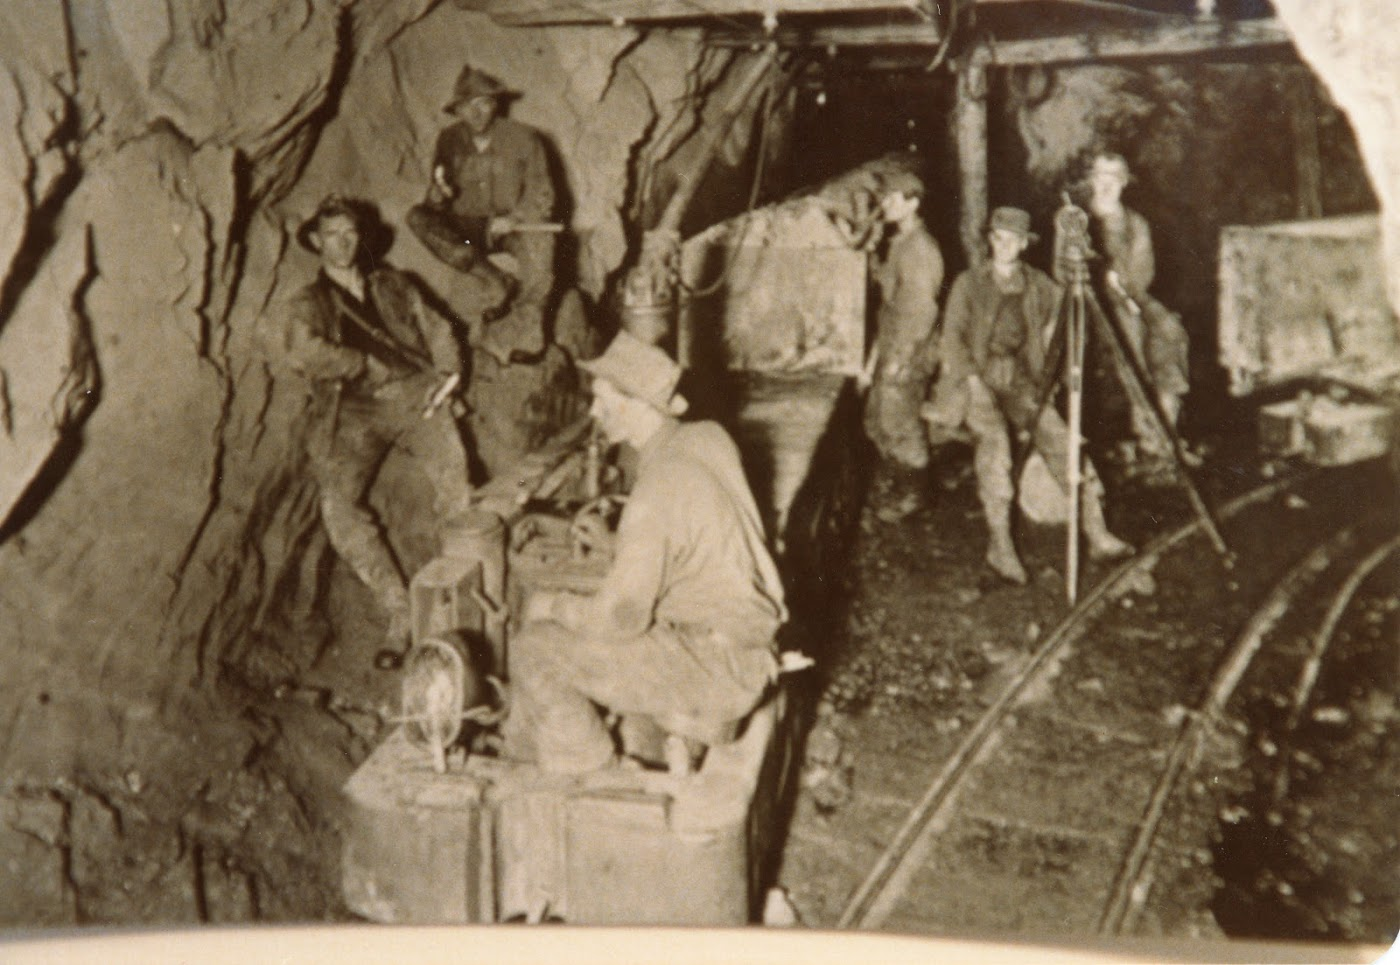 Photo 2304.0126: Photo of the 1300 foot level of the War Eagle Mine, circa 1913.